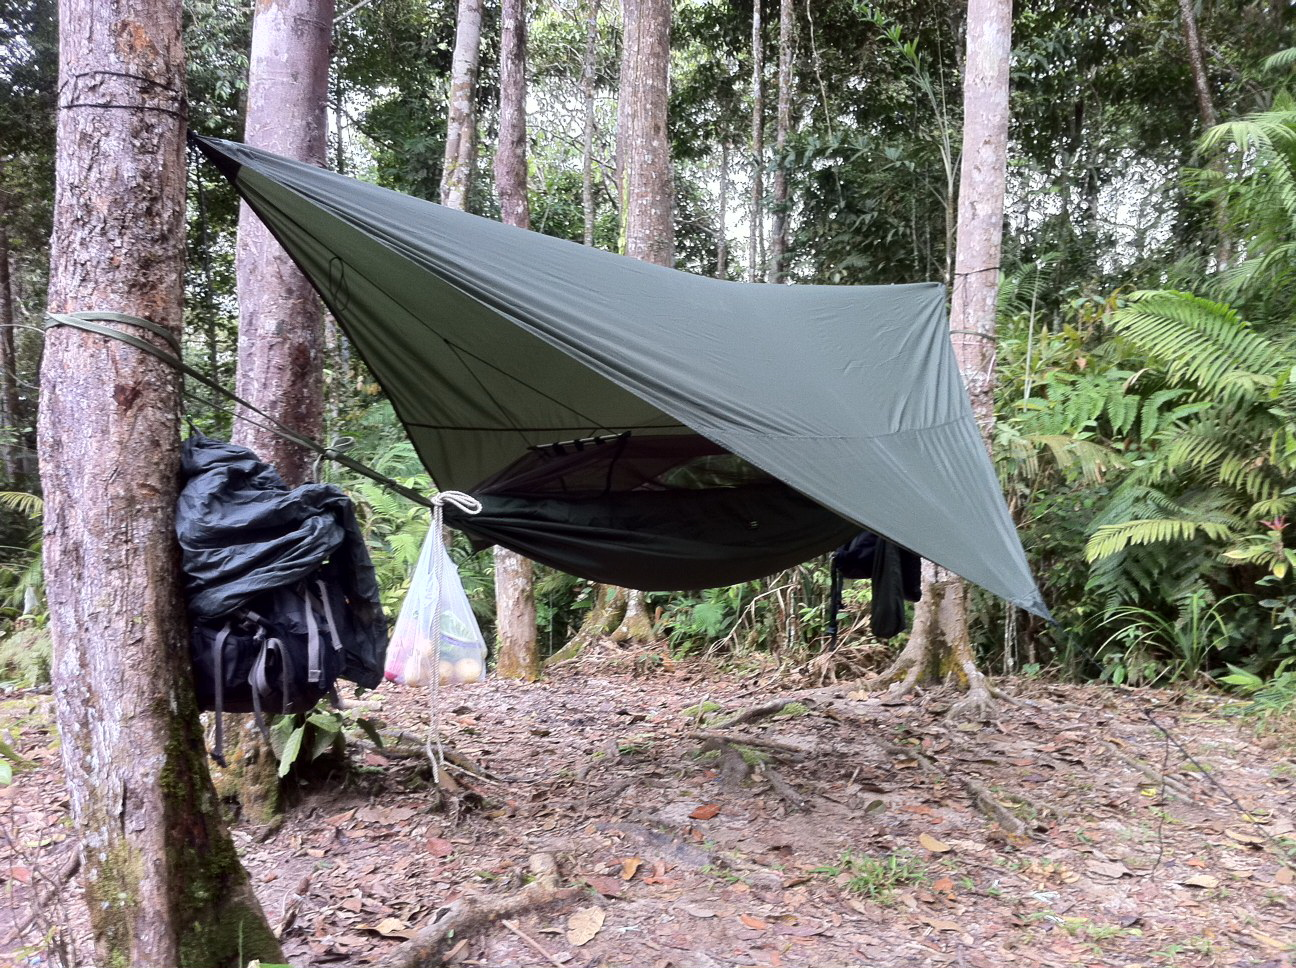 Medium image of tom fairweather u0027s jungle hammock  olive color  in the malaysian jungle